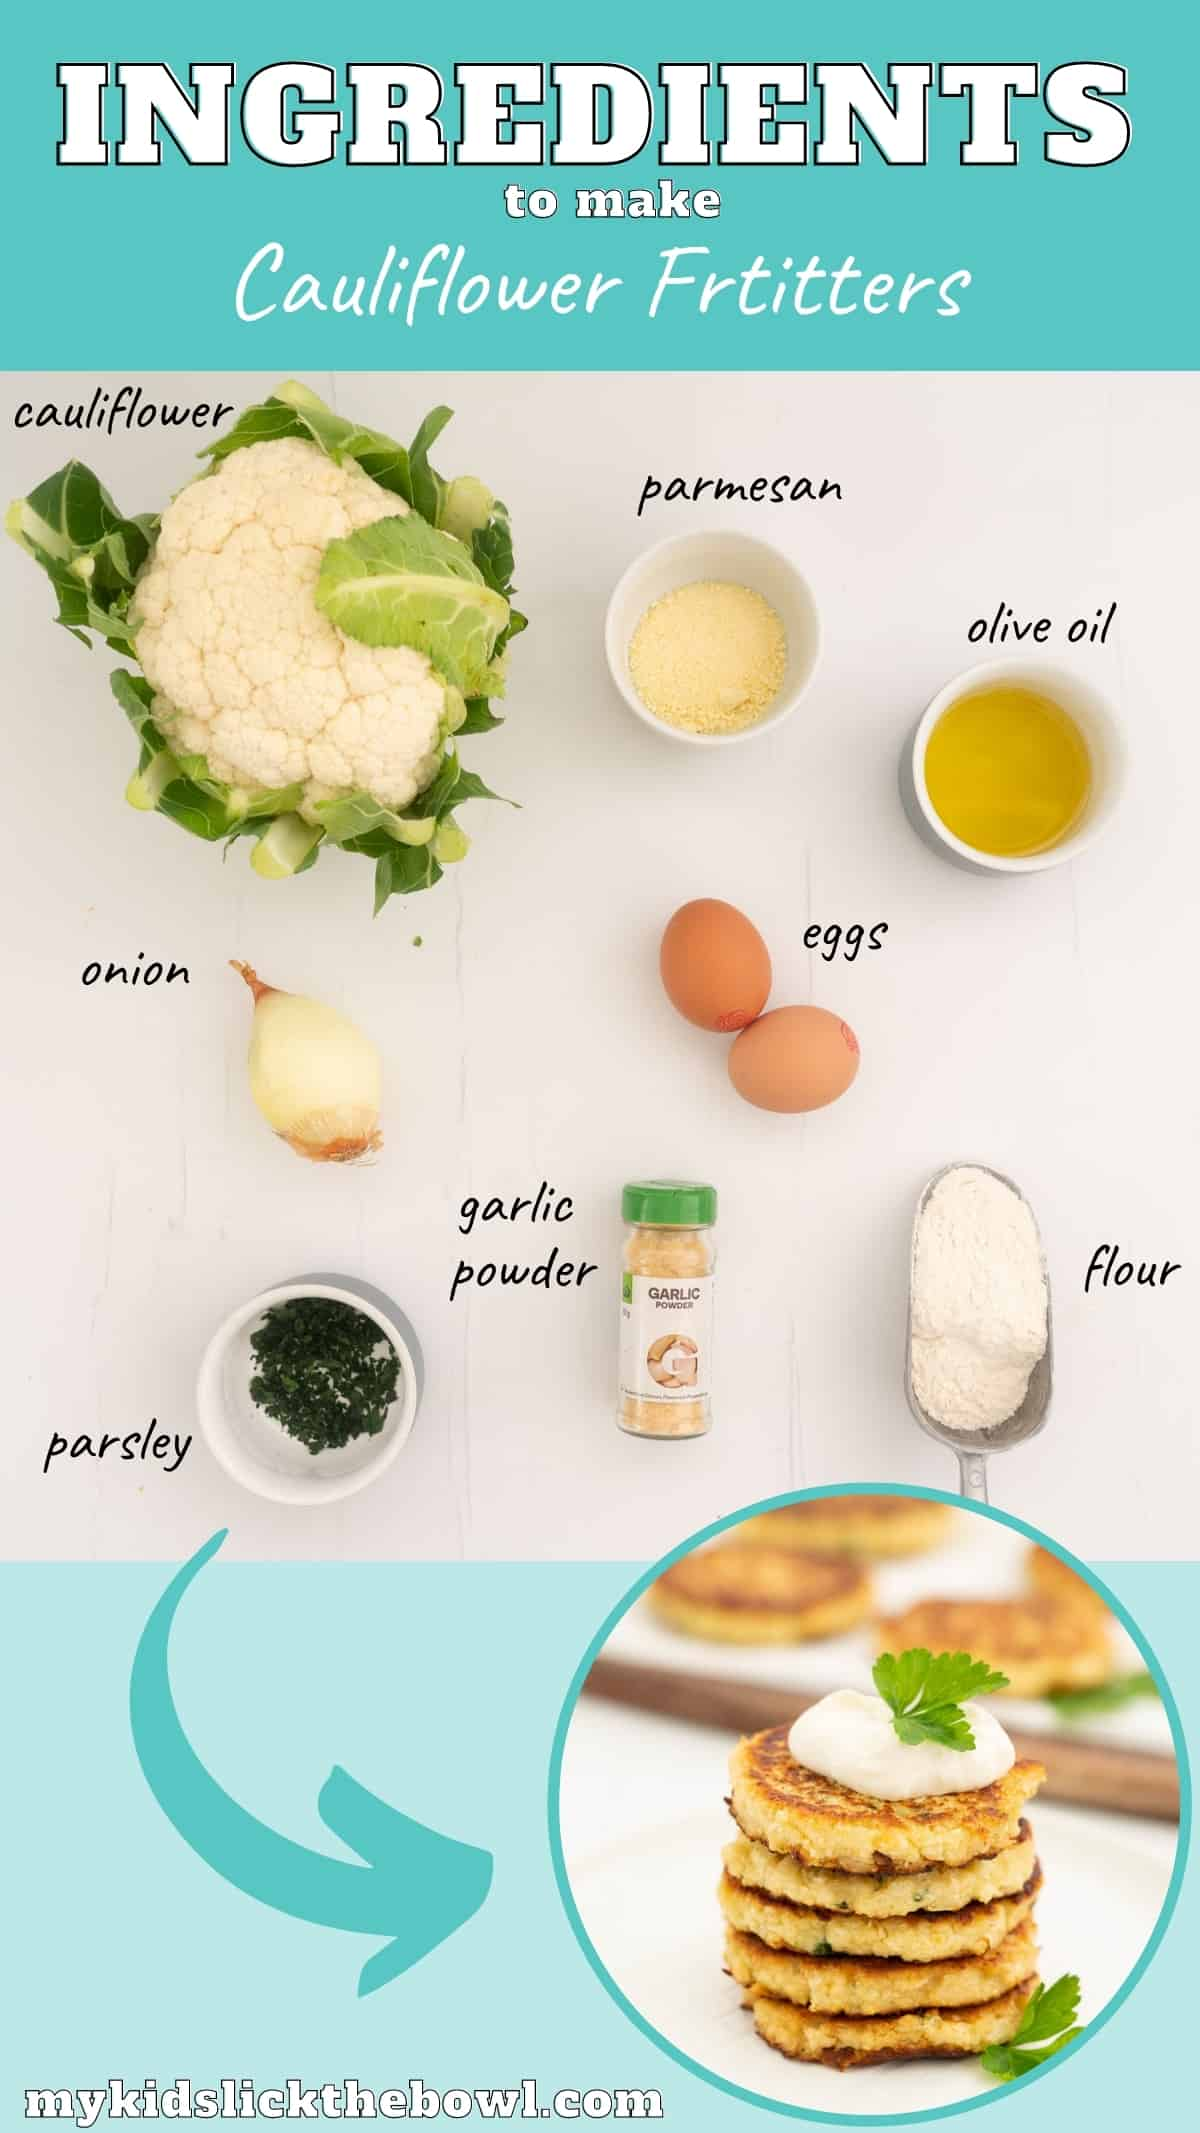 The ingredients to make cauliflower fritters laid out on  a counter top with text overlay.